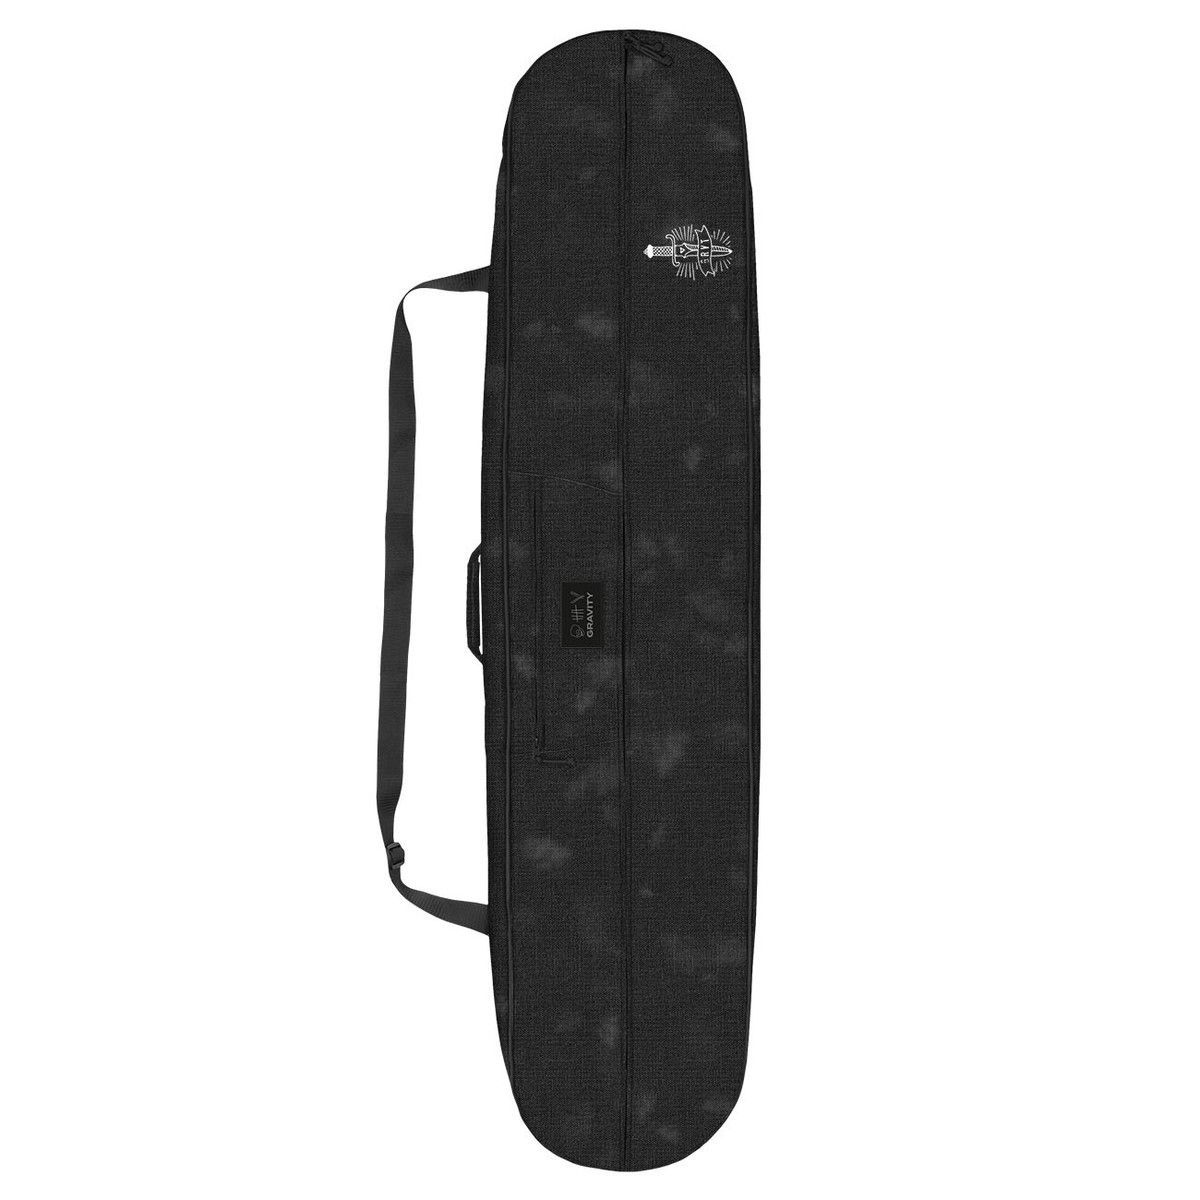 Obal na snowboard Gravity Scout 18/19 170 cm